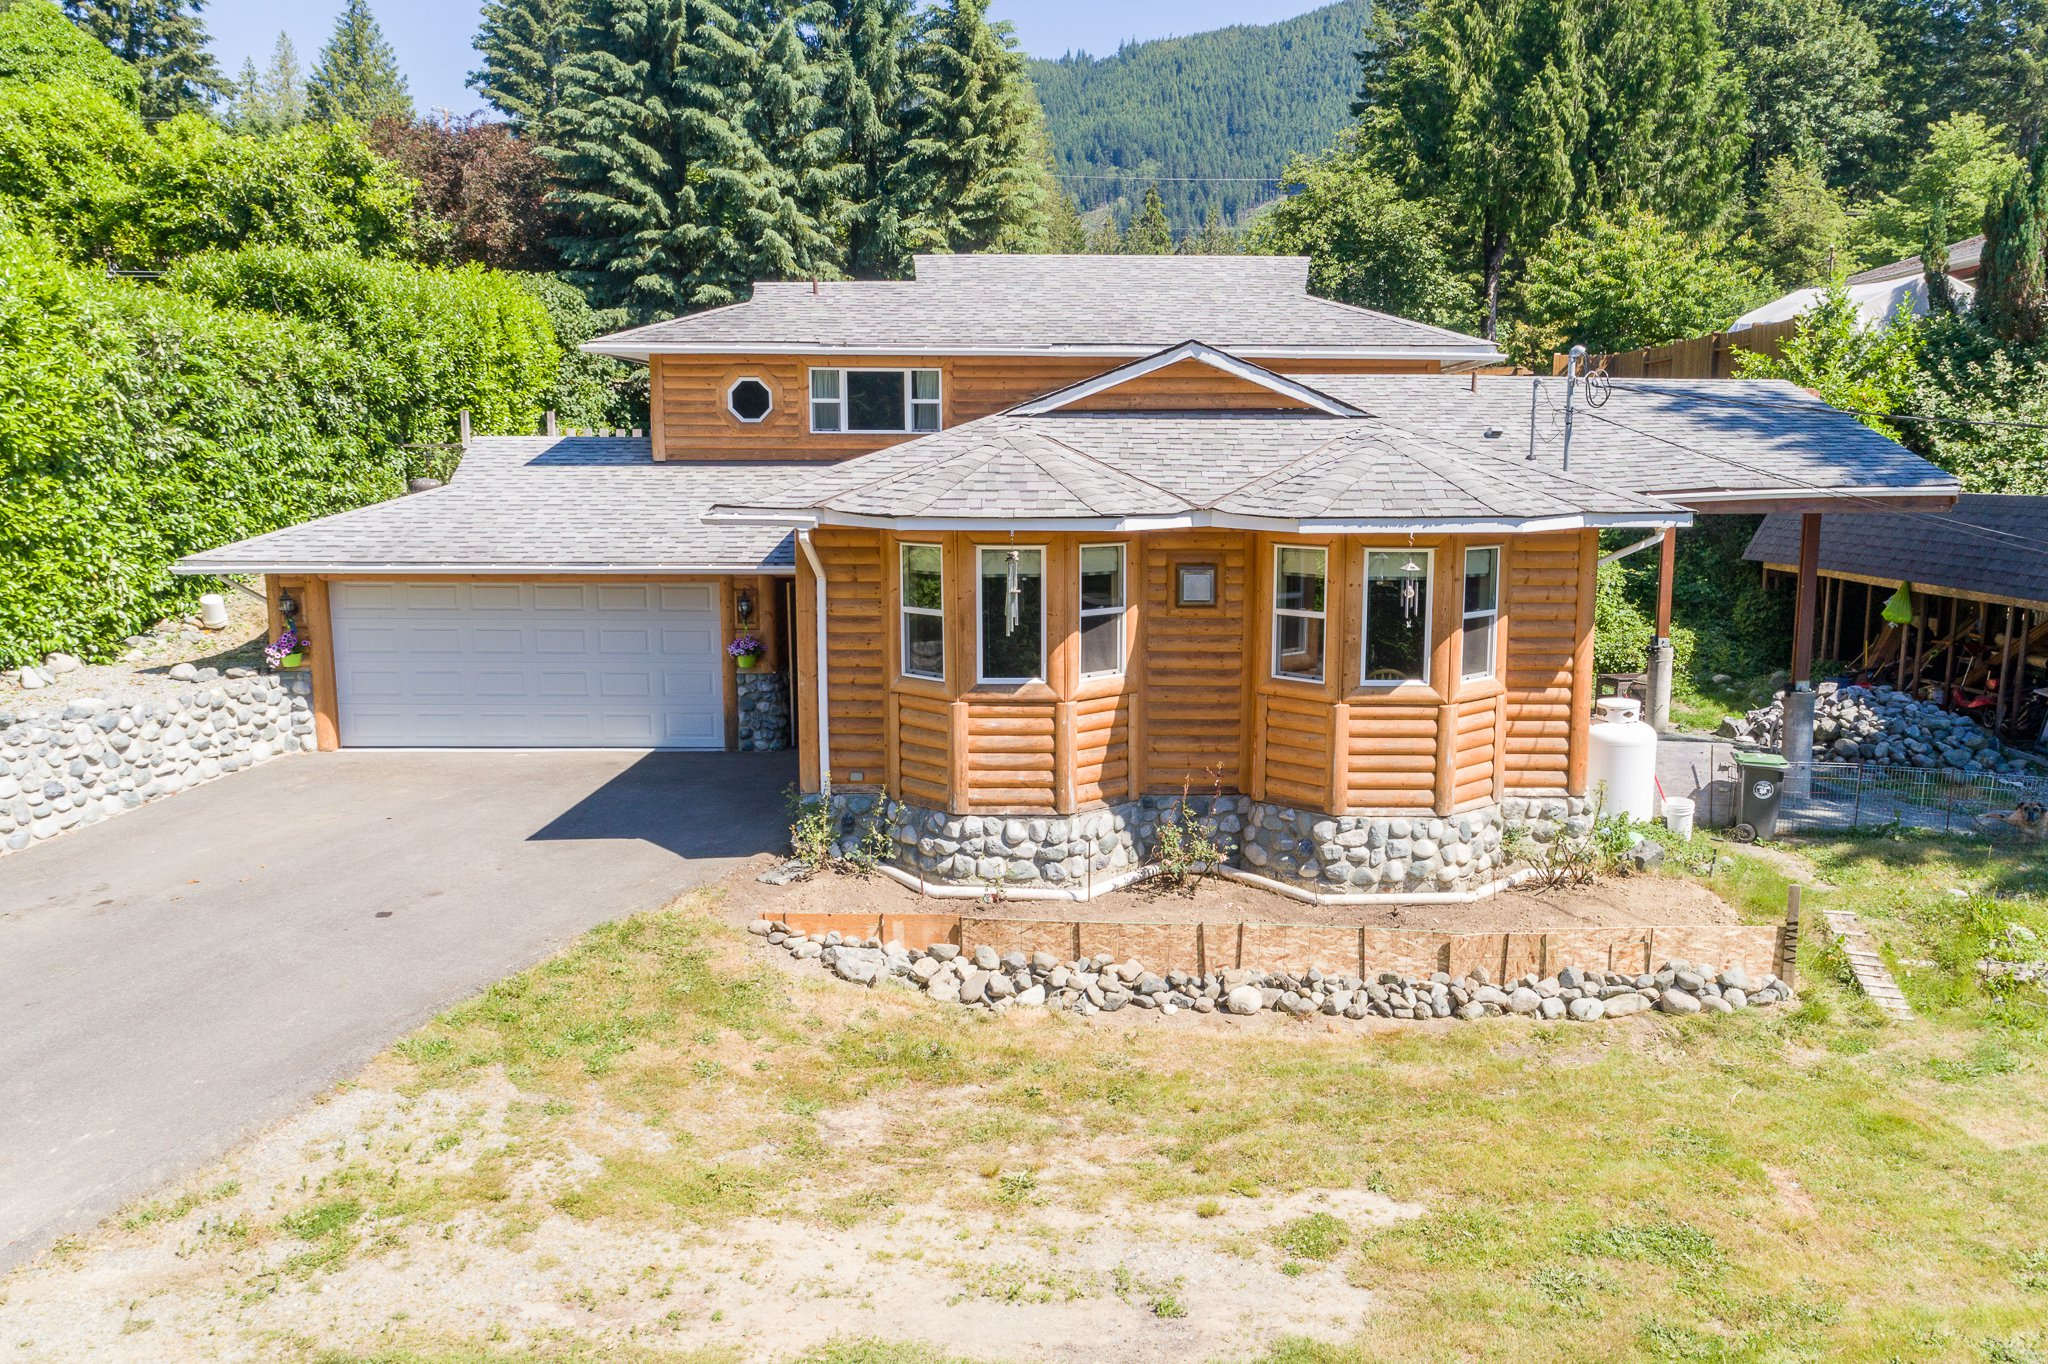 Main Photo: 19 Savoy Road in Lake Cowichan: Z3 Lake Cowichan Building And Land for sale (Zone 3 - Duncan)  : MLS®# 442191